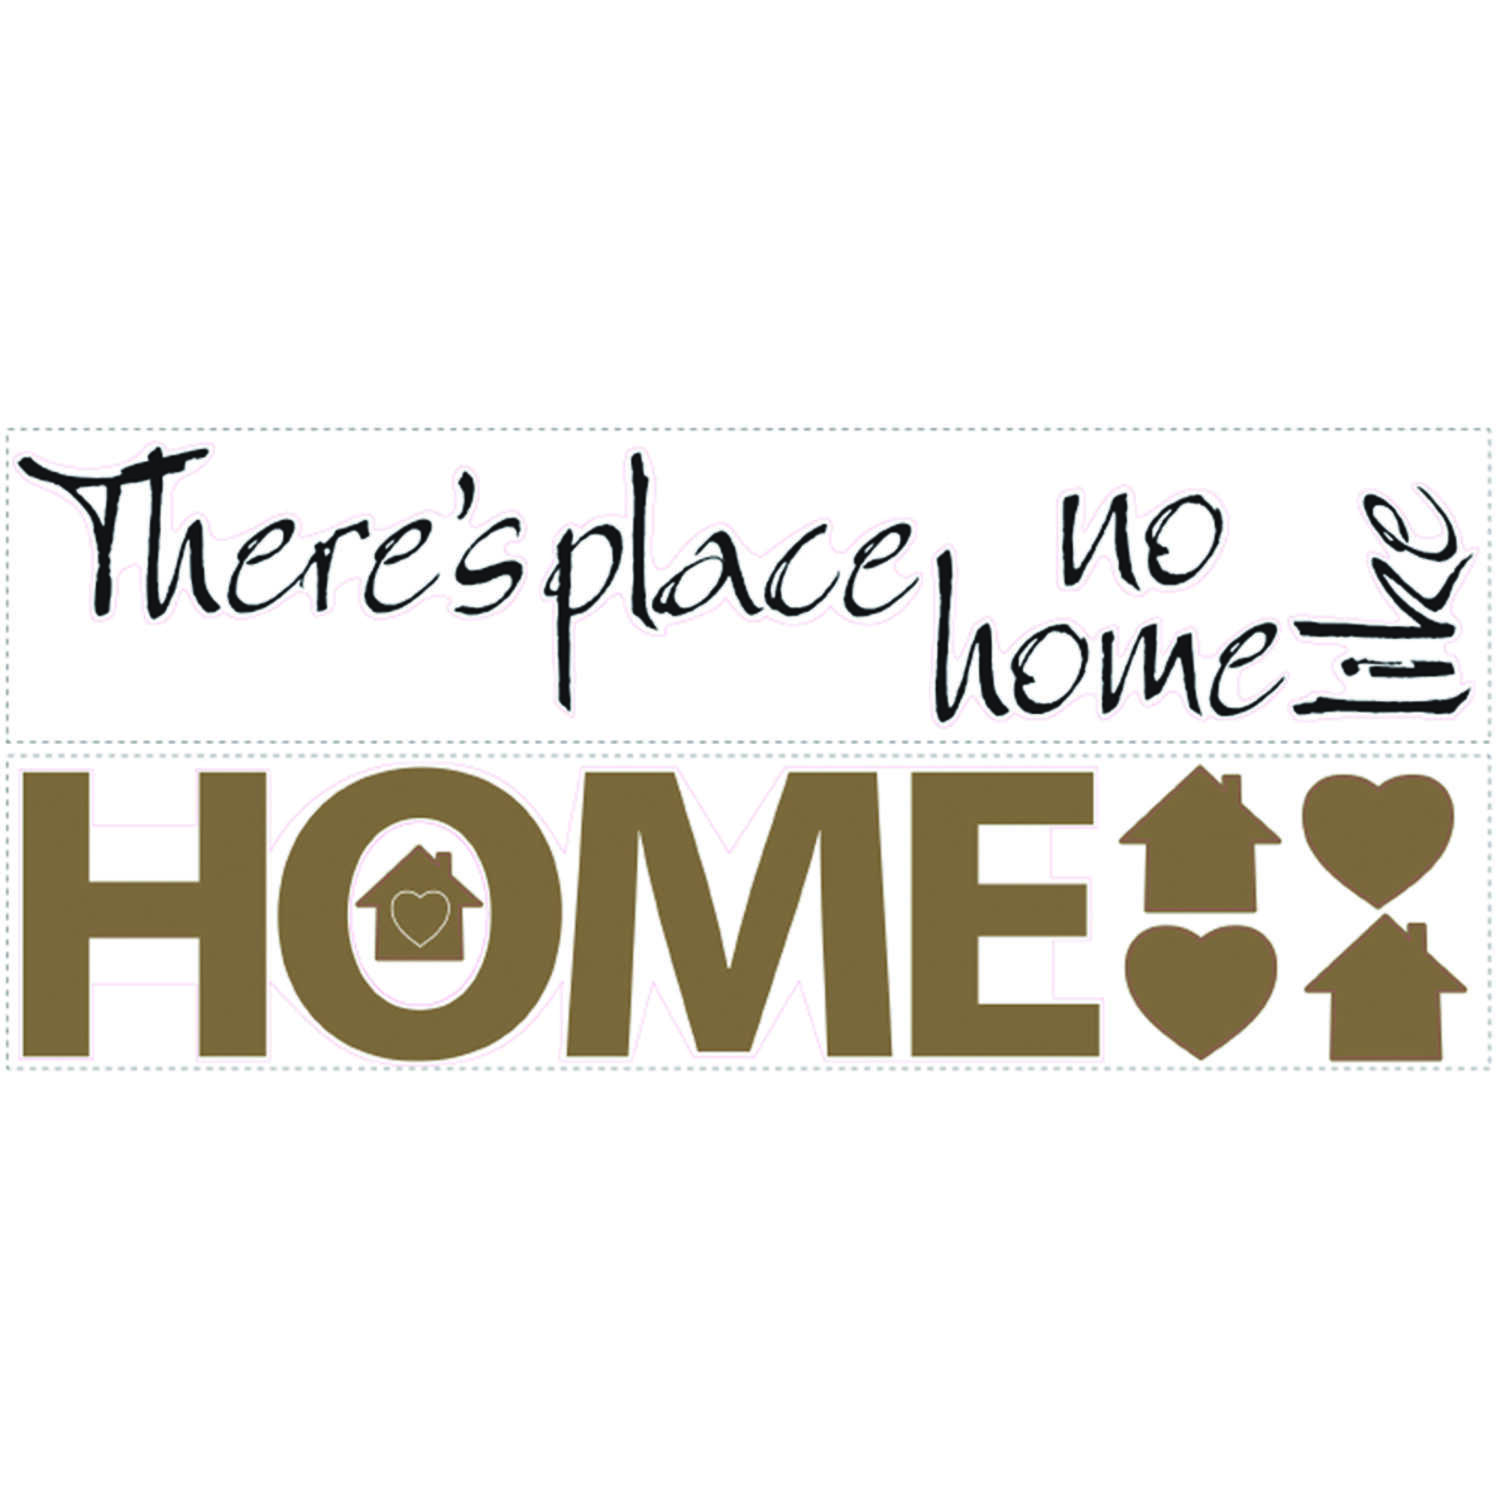 Roommates  28.5 in. W x 8 in. L No Place Like Home  Peel and Stick  Wall Decal